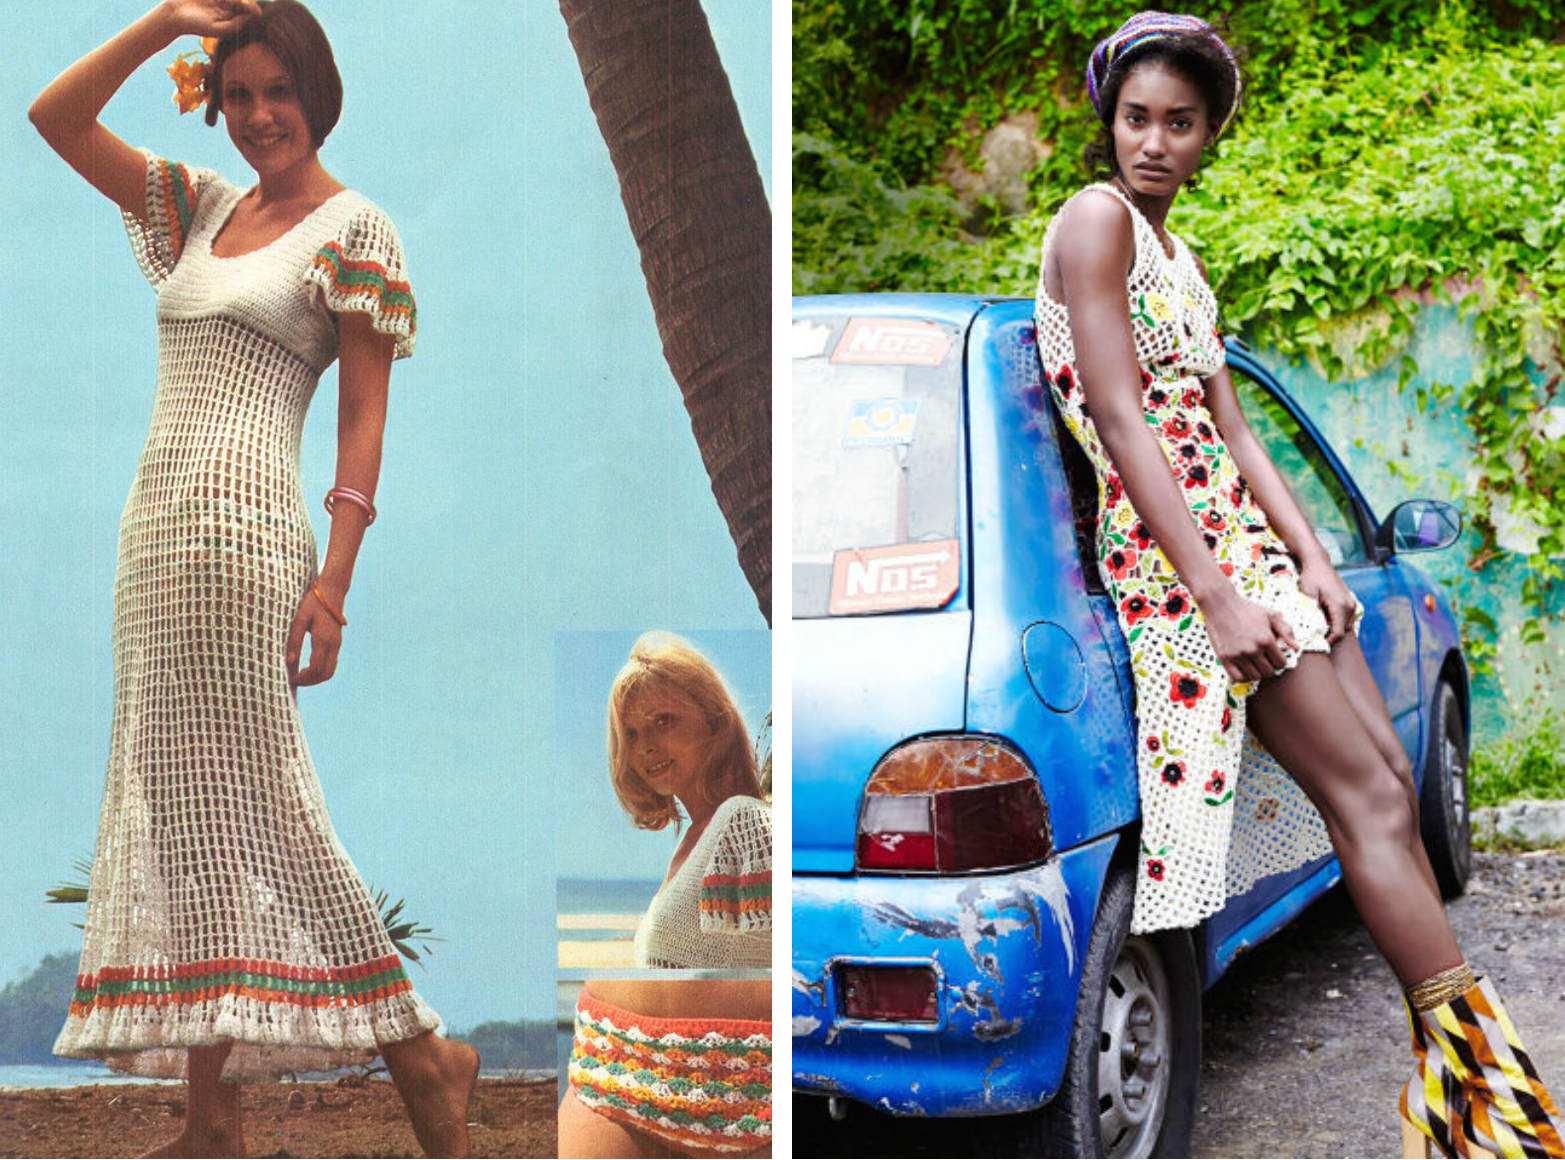 From left to right: Vintage 1970s crochet open work maxi dress with flare sleeves, and crochet silk dress by Oscar de la Renta featured in the March 2015 edition of Elle Magazine.